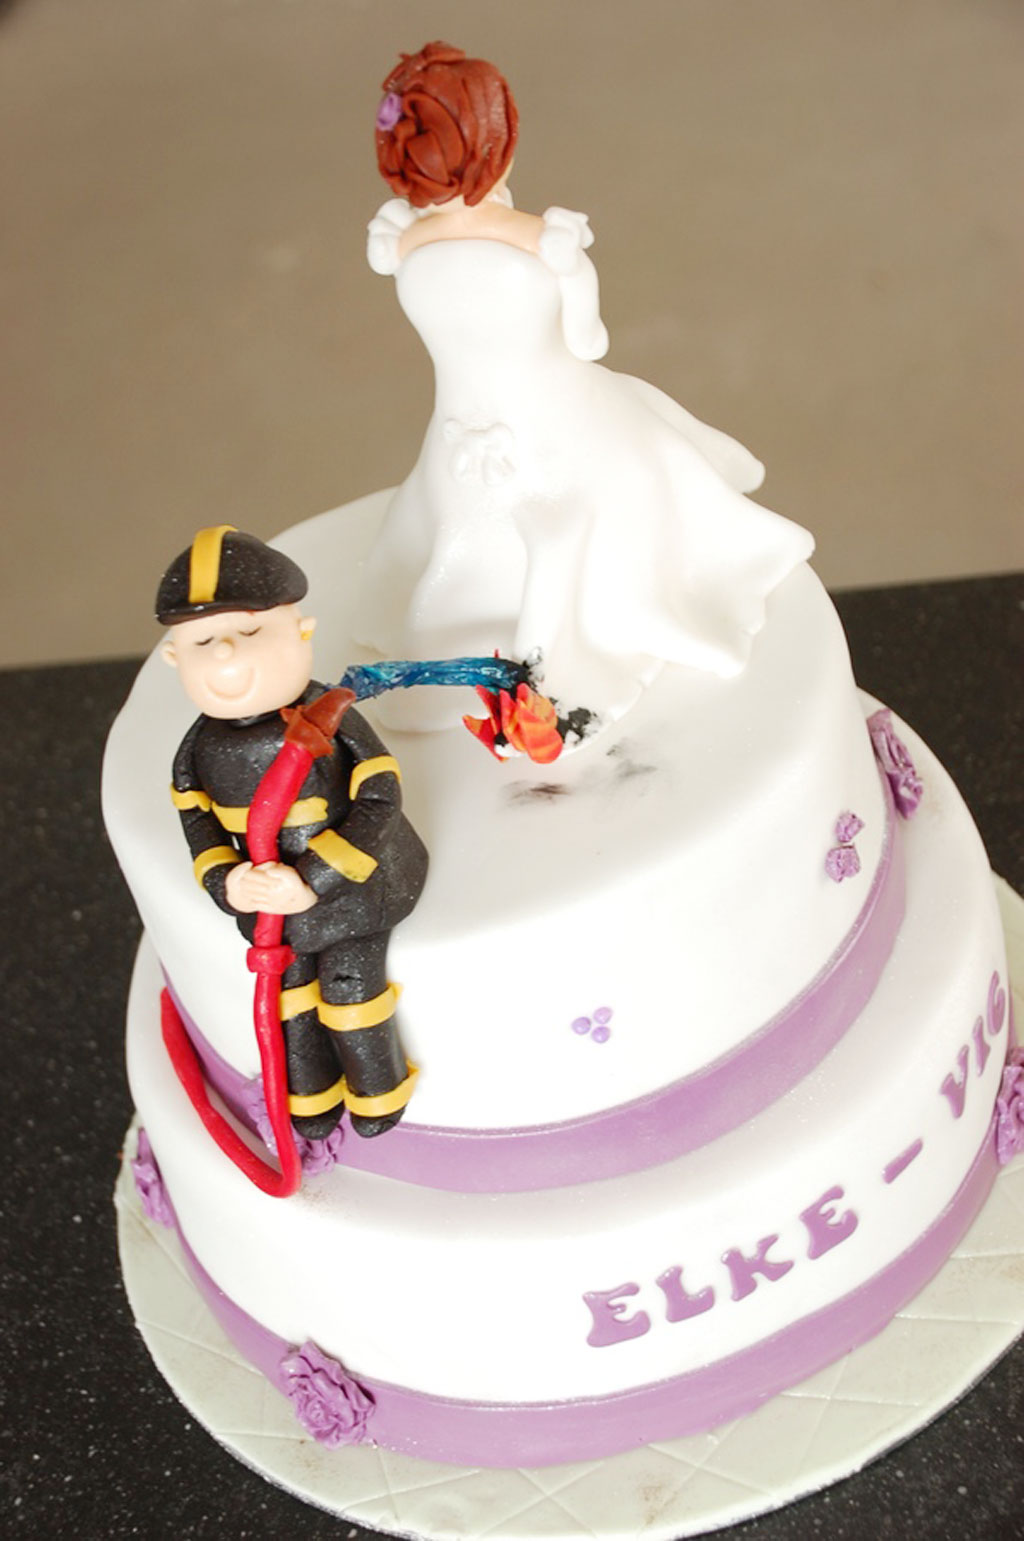 Outstanding Firefighter Wedding Cake Topper Image Collection - The ...